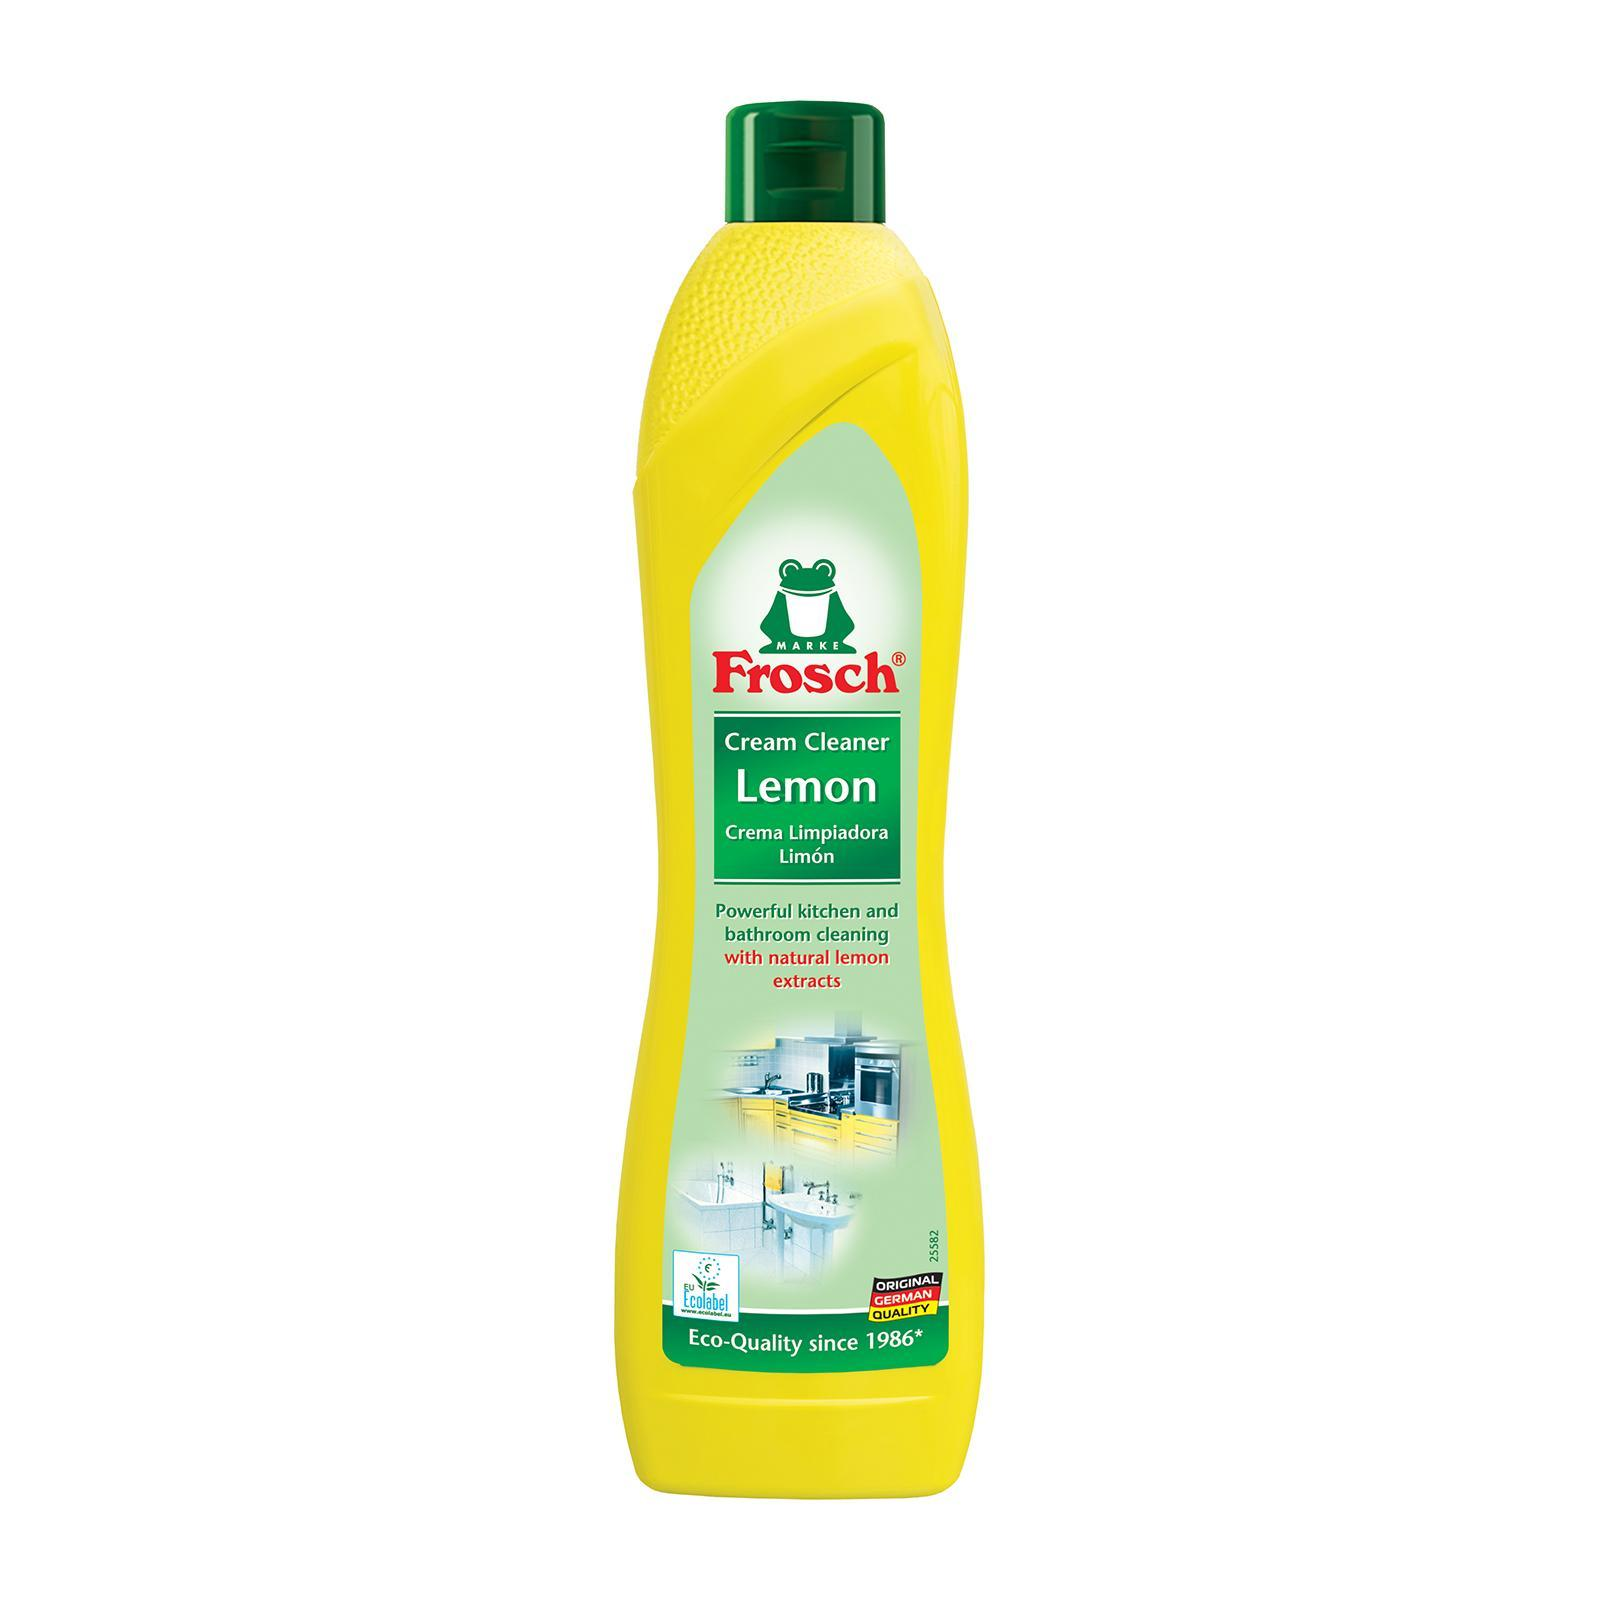 Frosch Lemon Cream Cleaner 500 ML